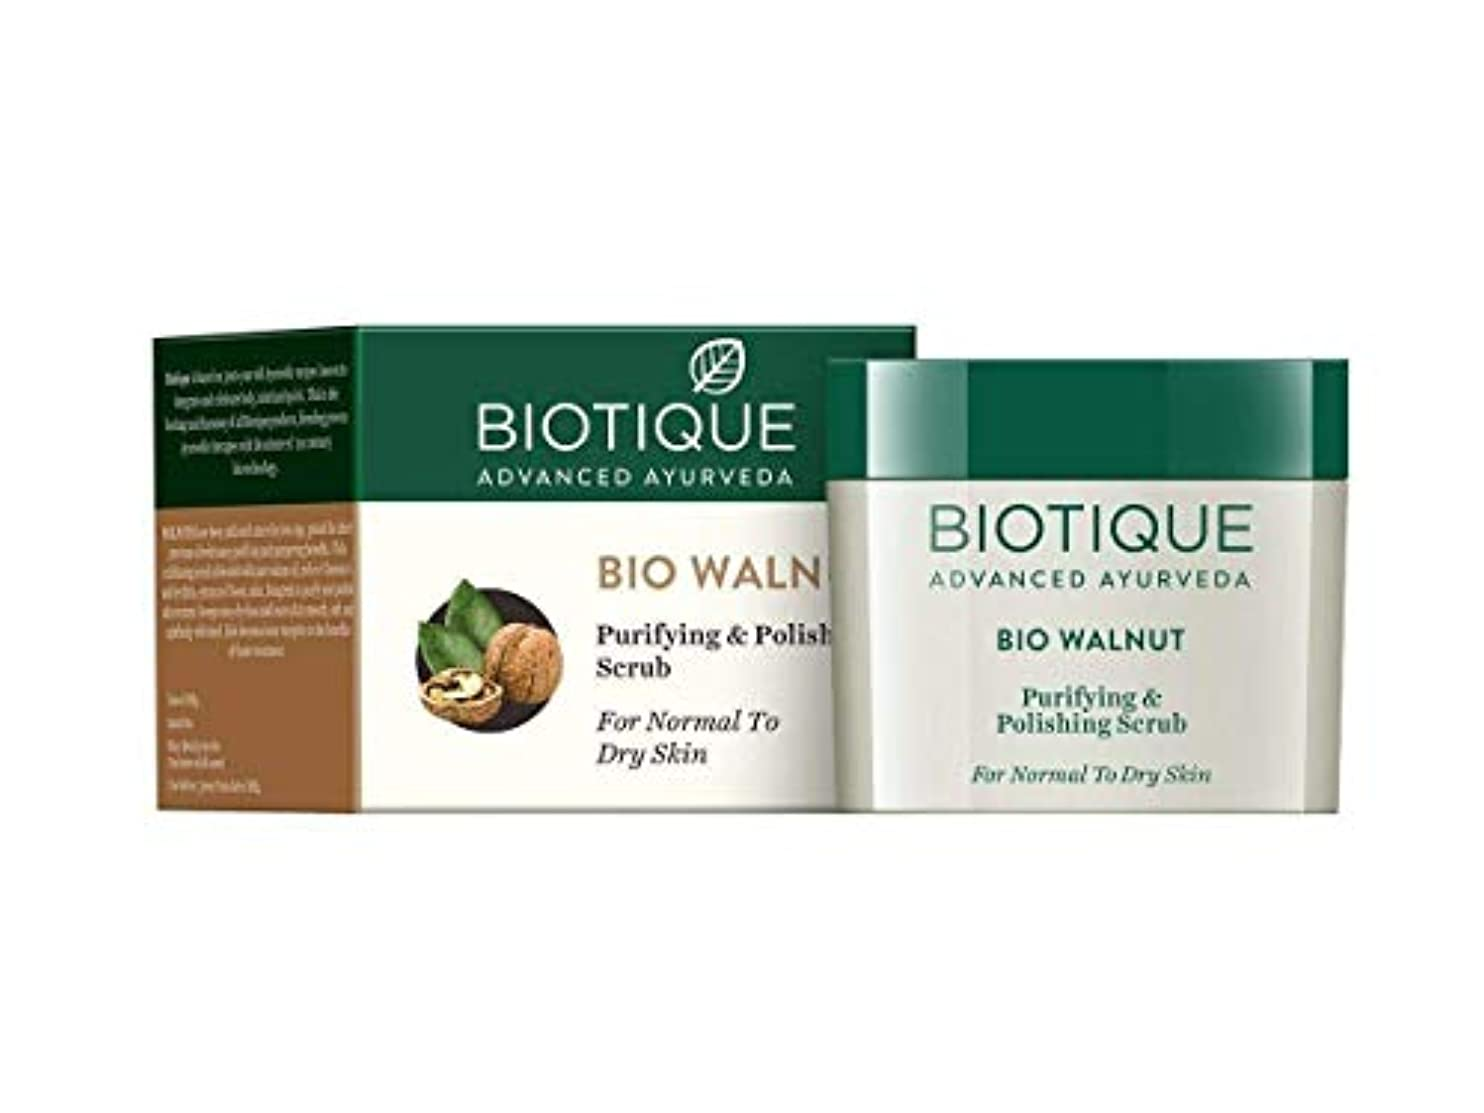 はぁデコードする経度Biotique Bio Walnut Purifying & Polishing Scrub, 50g get rid of the dead cells